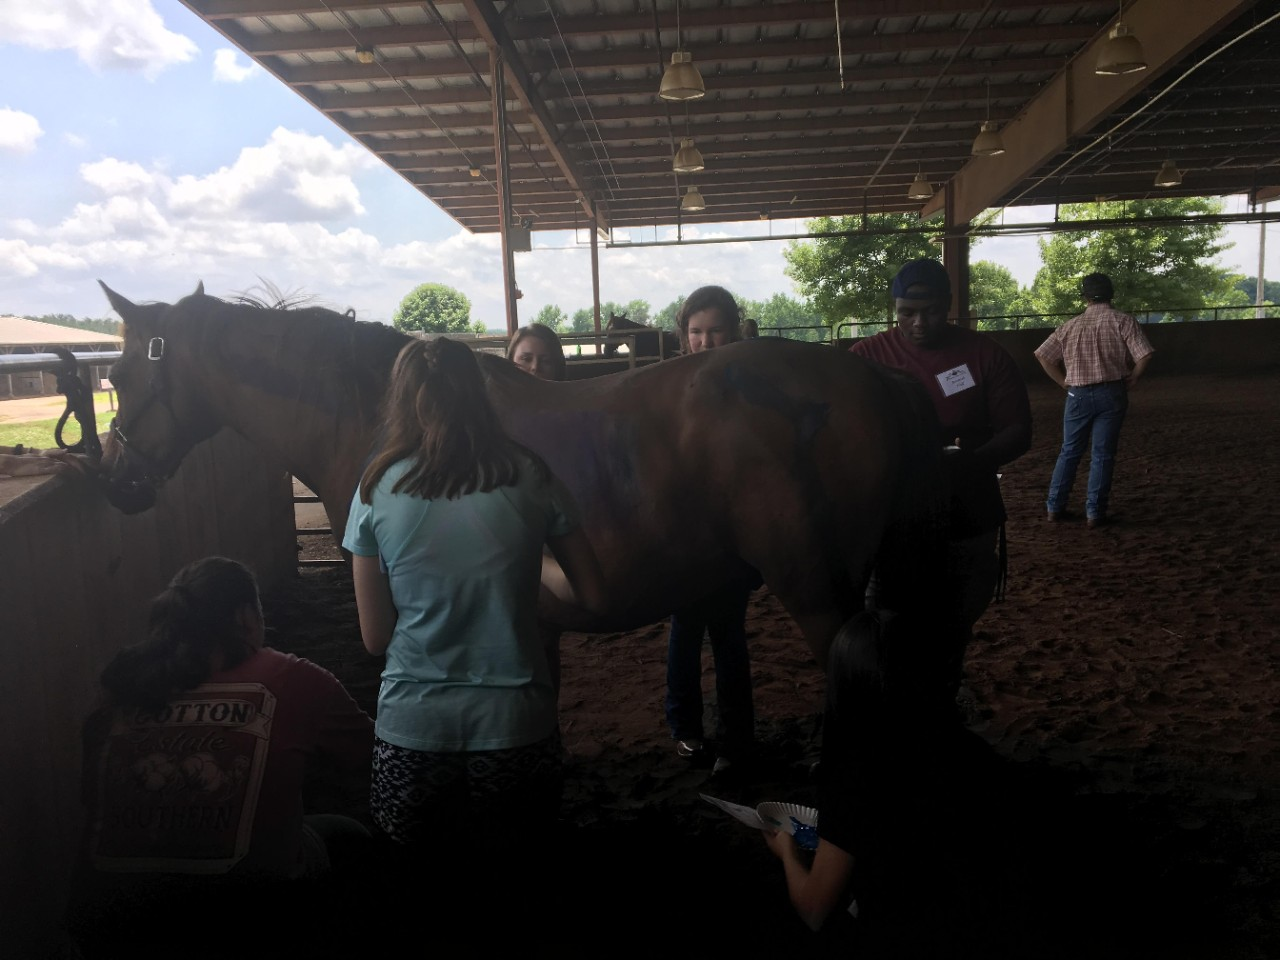 Animal Science in Action participants with horses